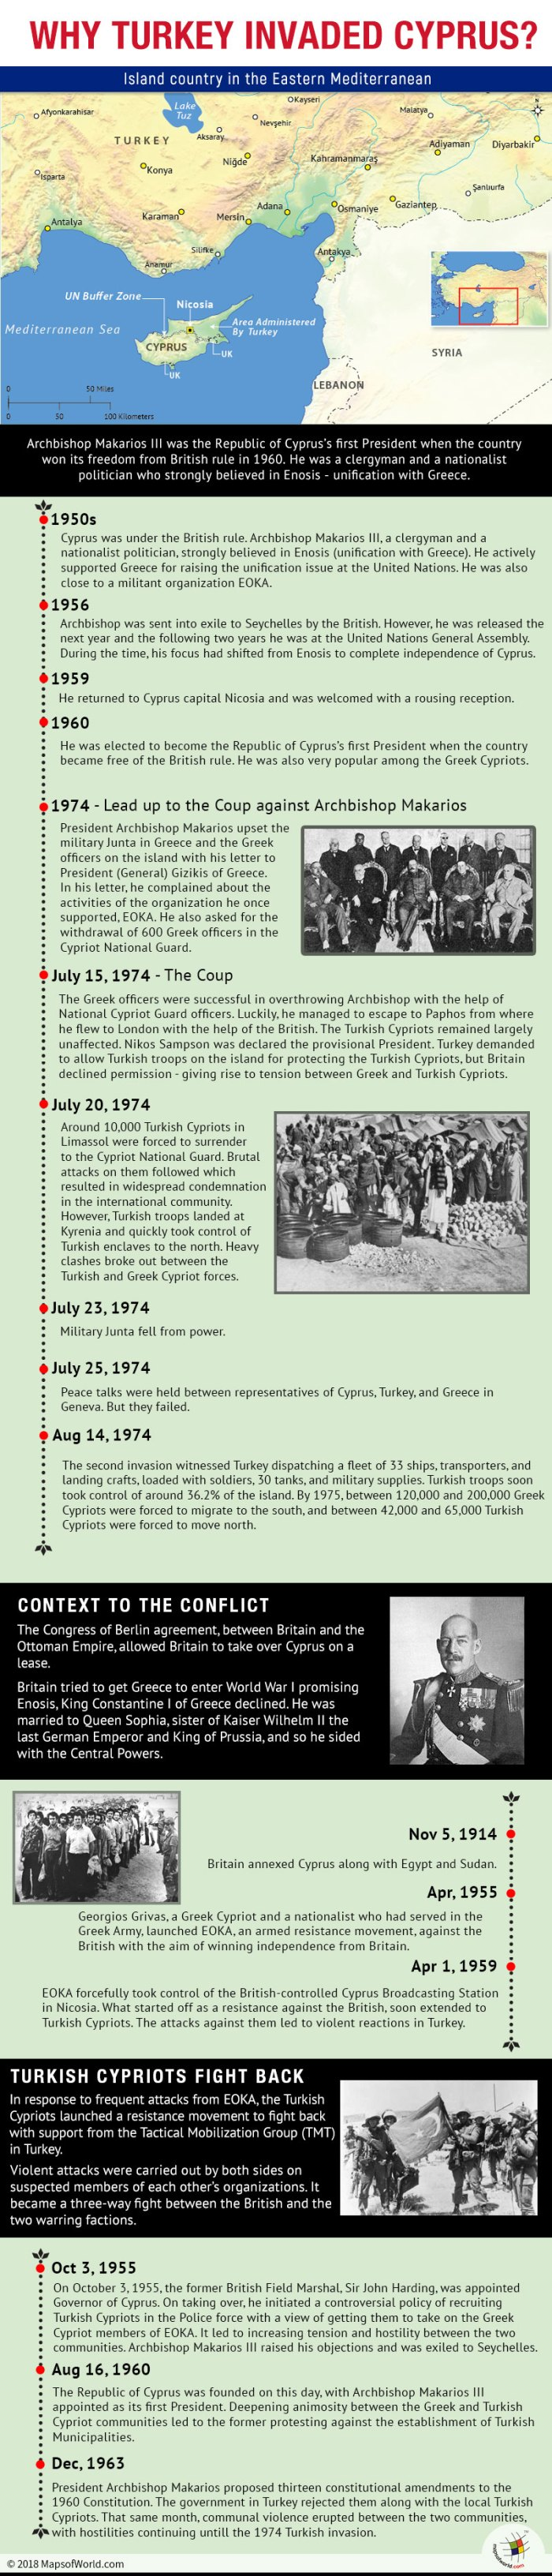 Infographic on Turkey Cyprus Conflict